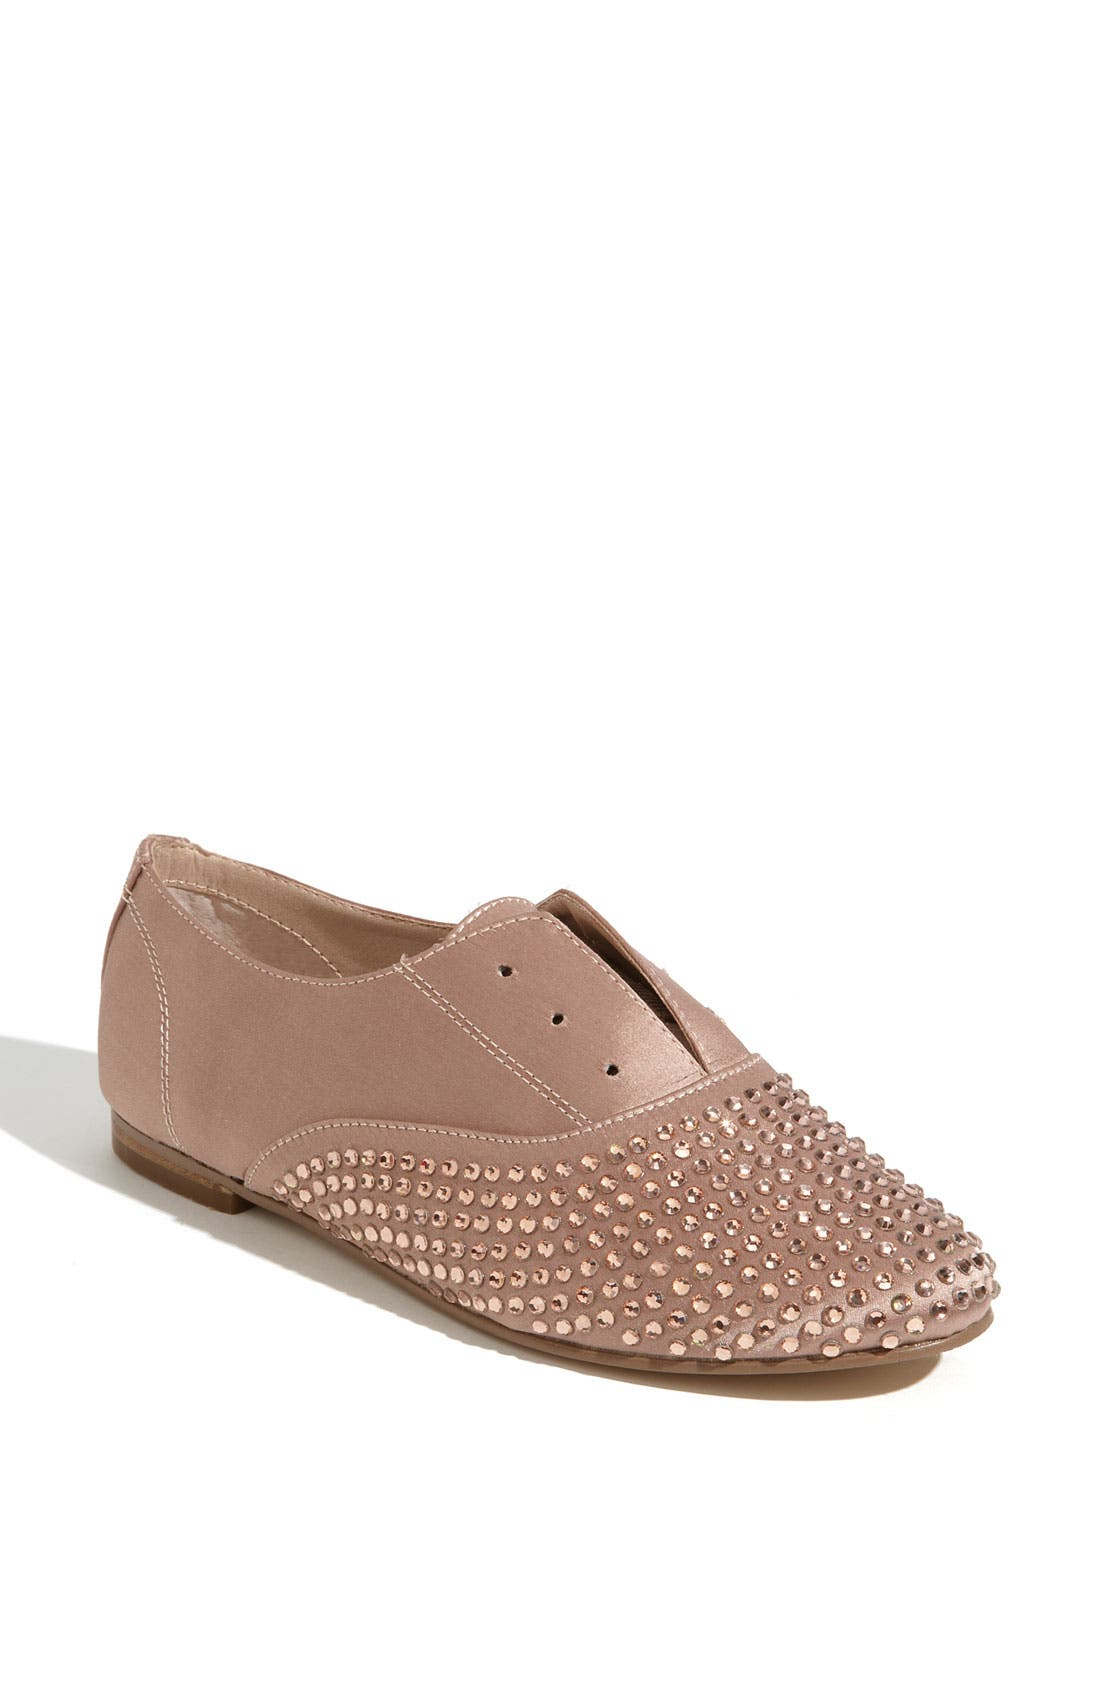 Main Image - Steve Madden 'Tapps' Laceless Oxford